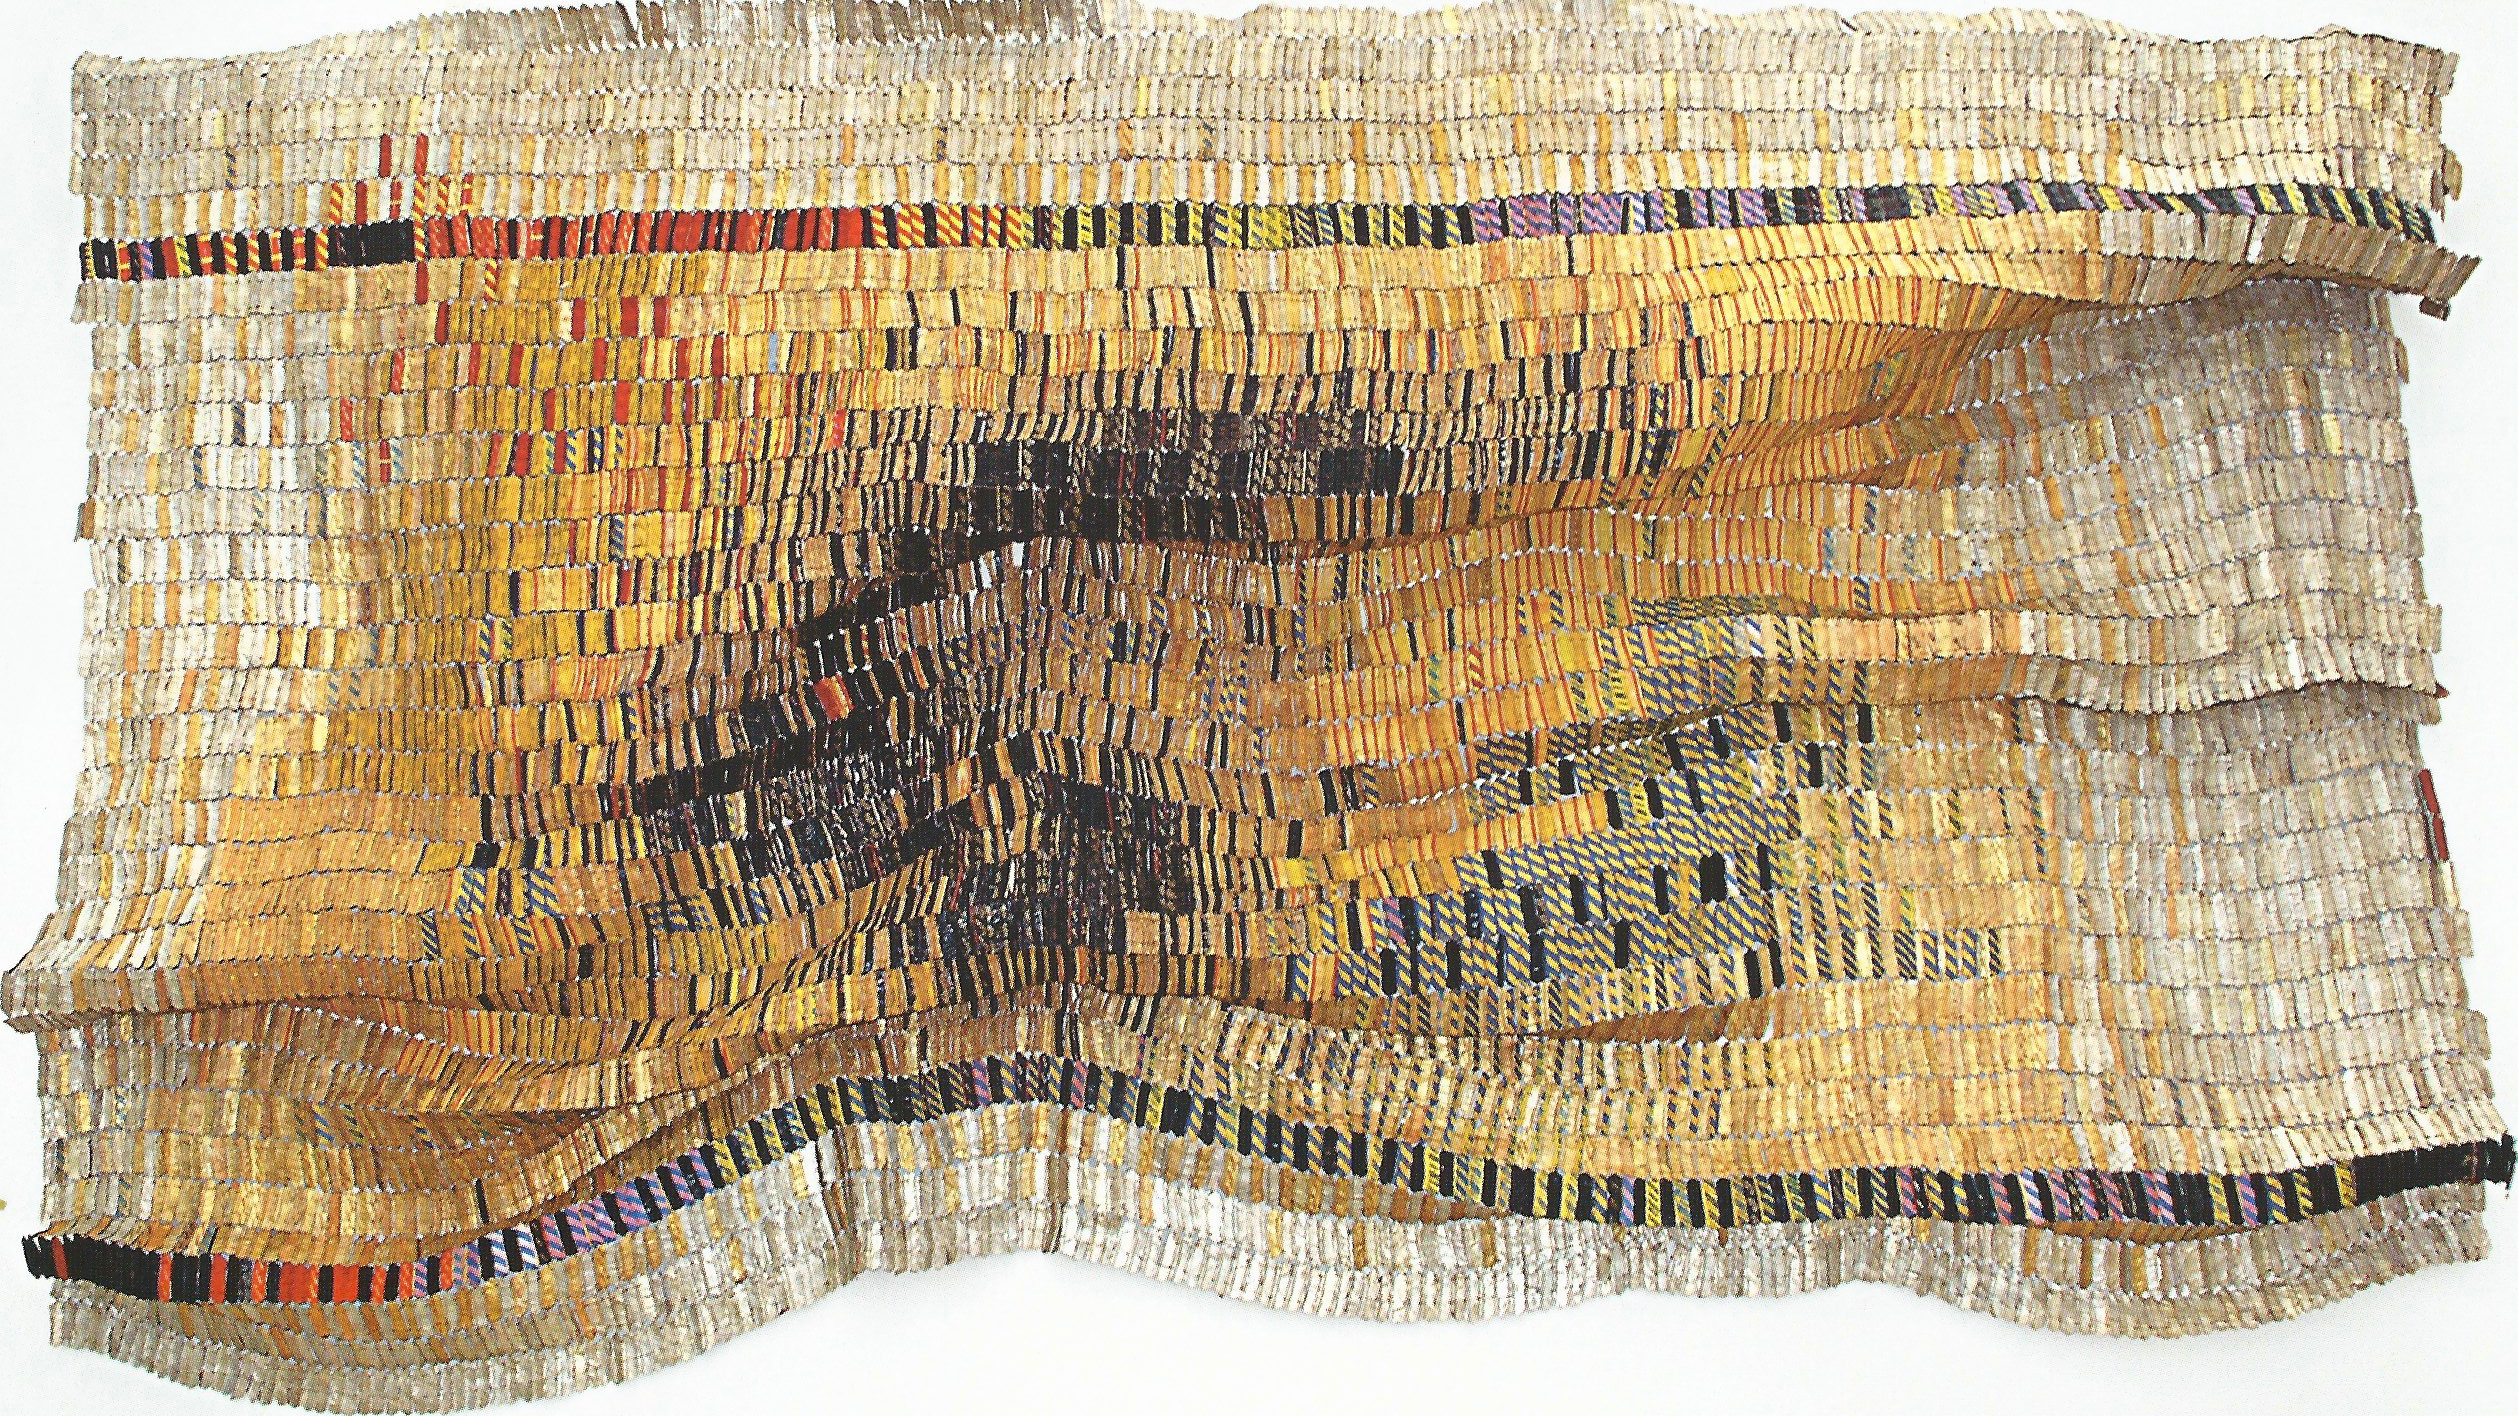 "El Anatsui, Untitled, 2007, aluminum and copper wire, 144"" x 195"", Blanton Museum of Art, The University of Texas at Austin, reproduction scanned by S. Coleman."